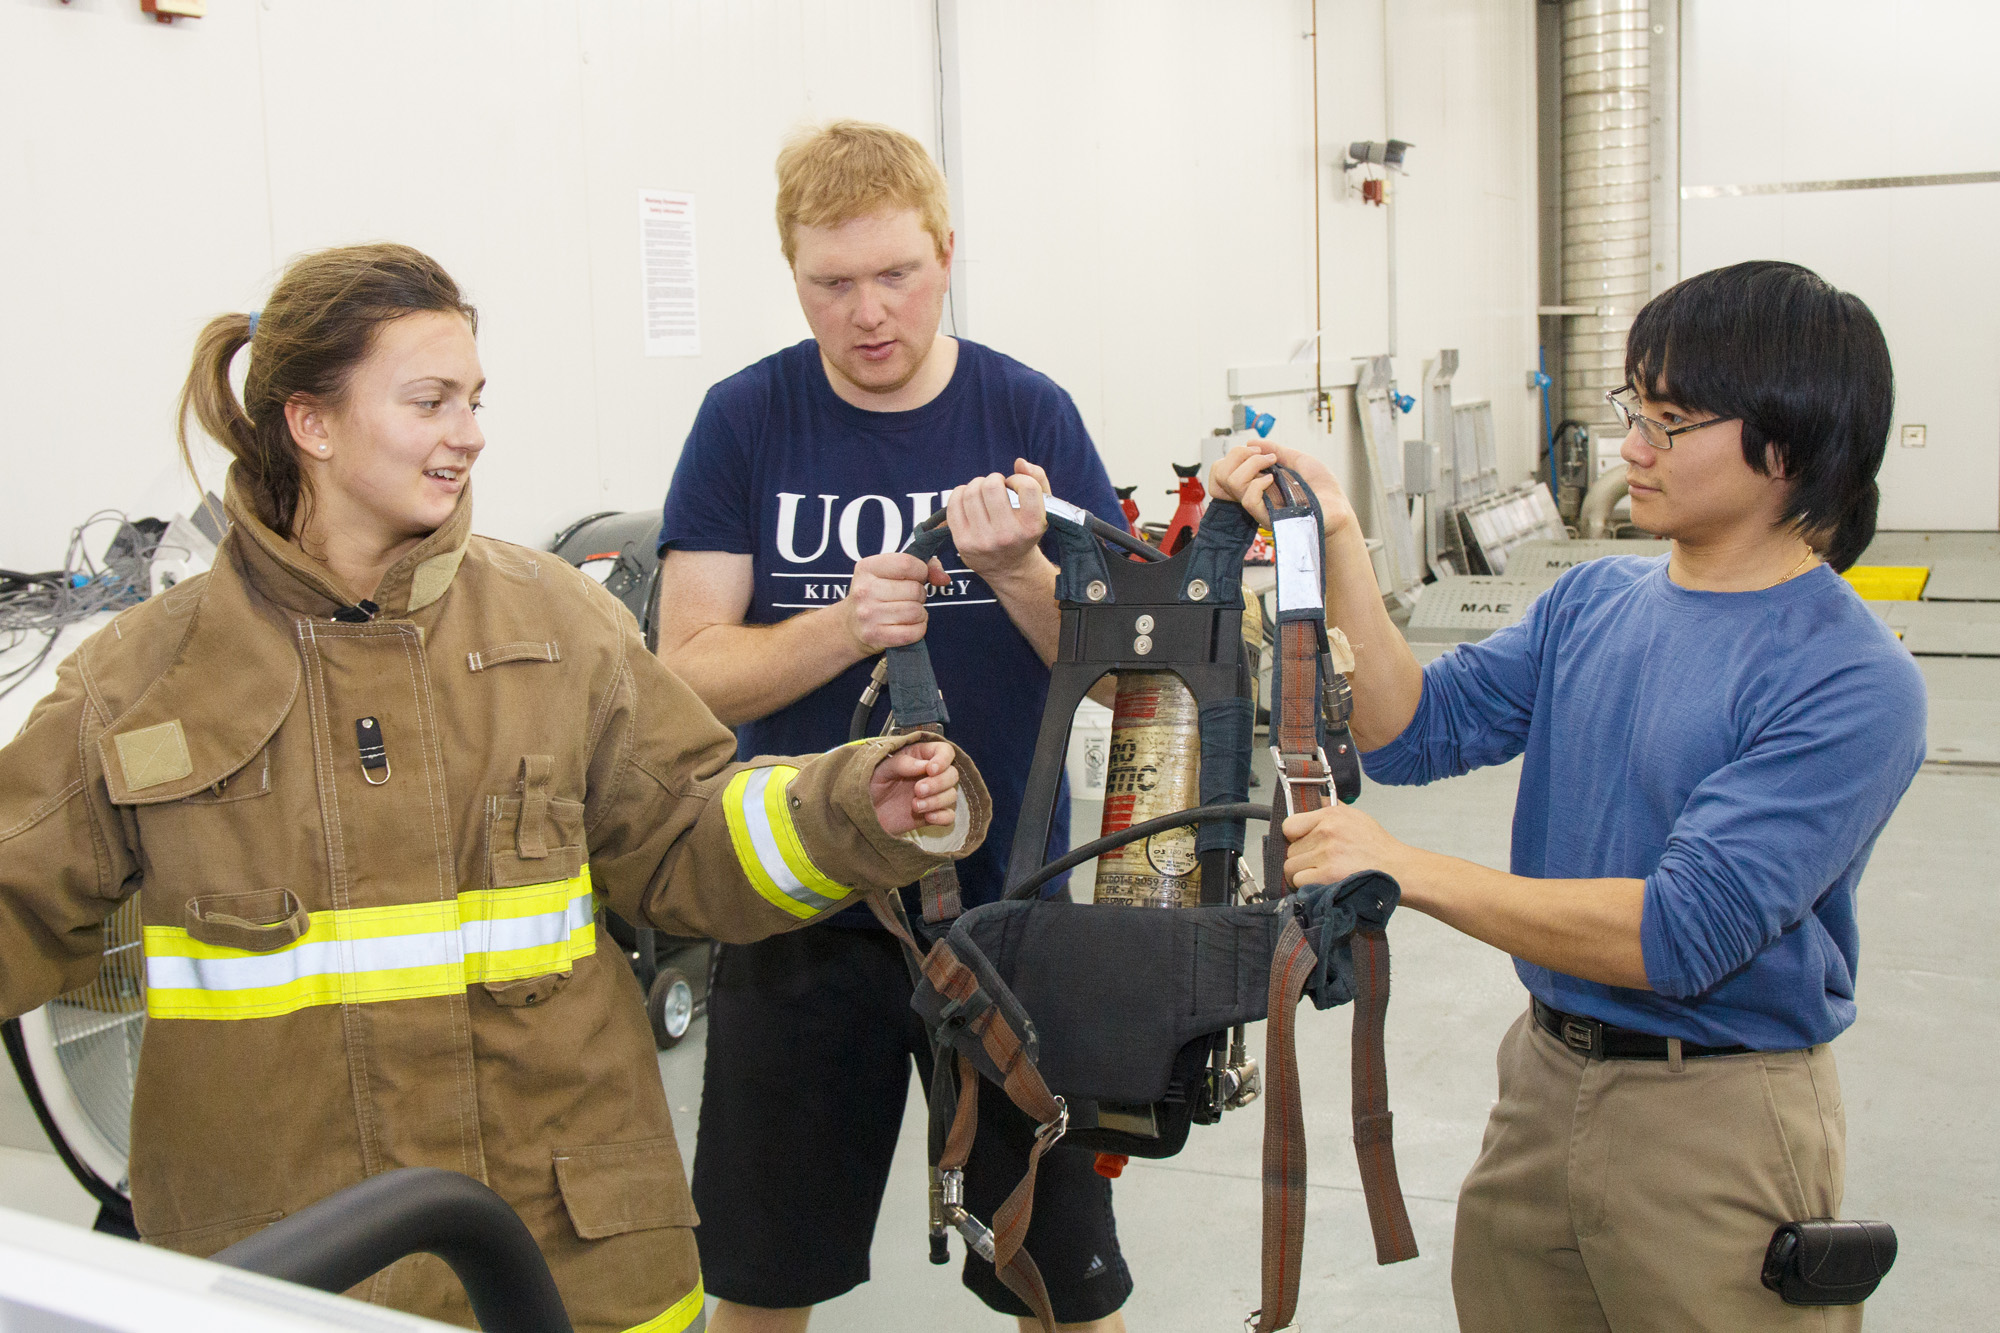 Firefighter testing and training at ACE